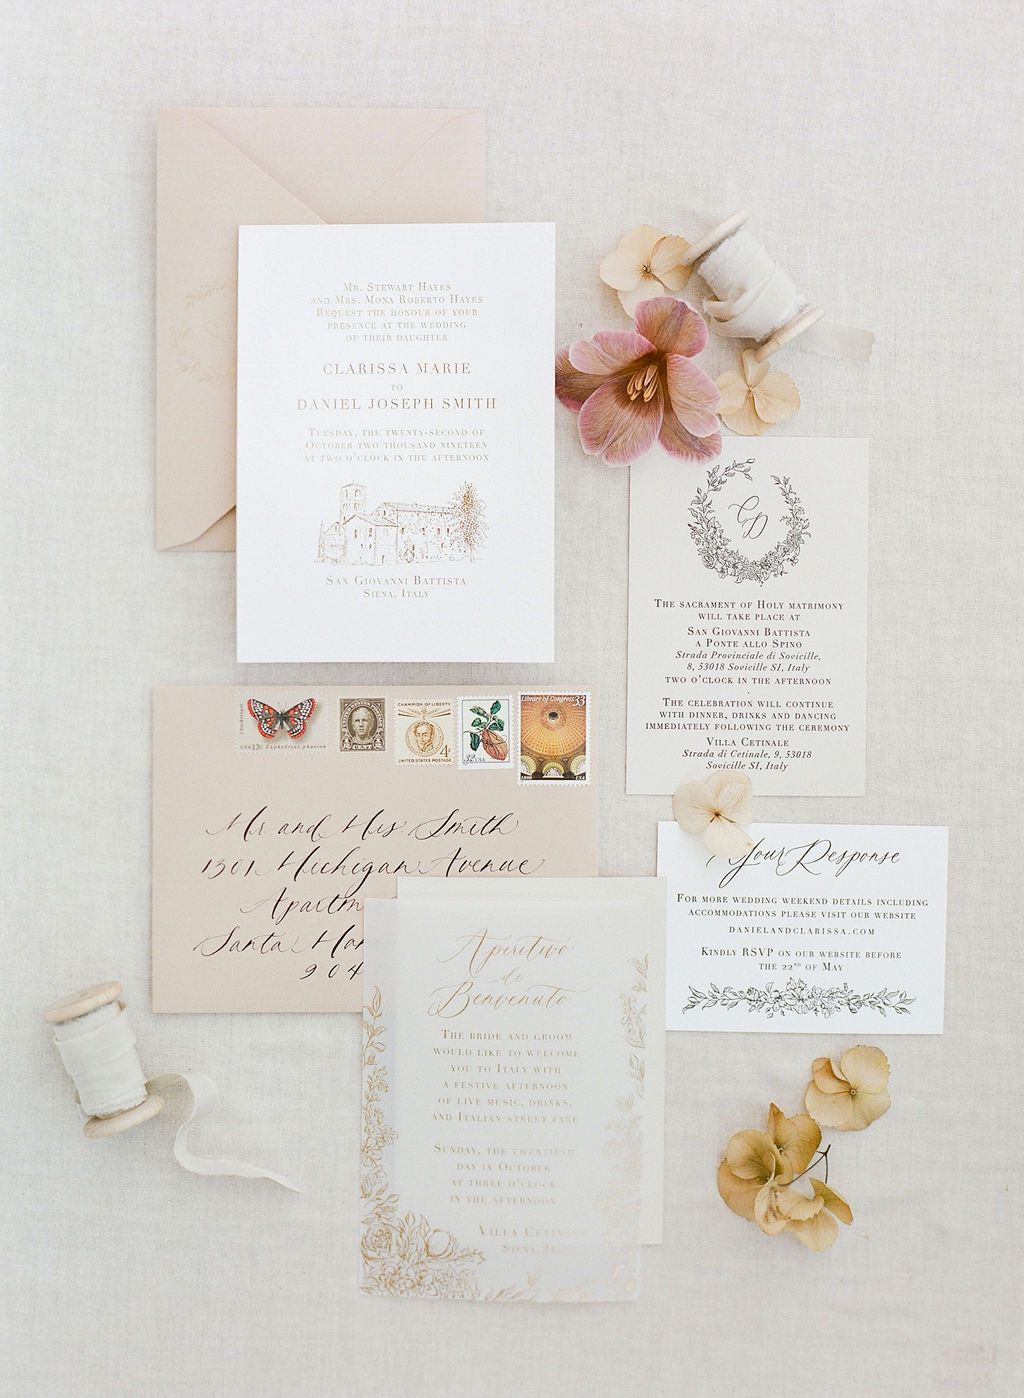 wedding invitation suite with custom crest and floral border